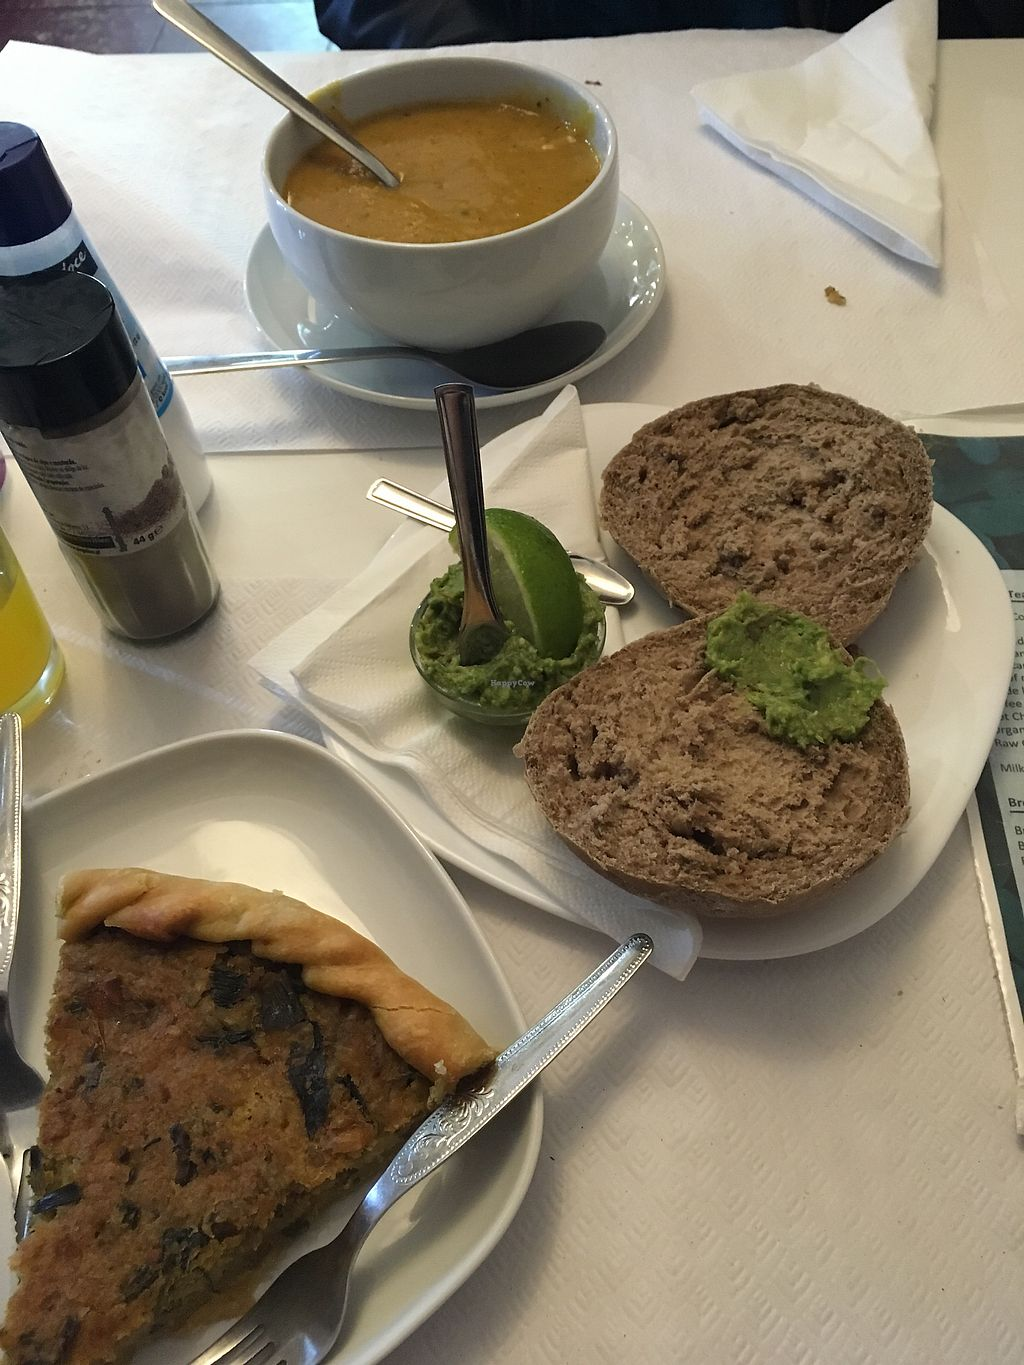 "Photo of Veganeats Caffe  by <a href=""/members/profile/Oxymora"">Oxymora</a> <br/>Vegetable quiche, chick peas soup and avocado toasts <br/> January 4, 2018  - <a href='/contact/abuse/image/74111/342979'>Report</a>"